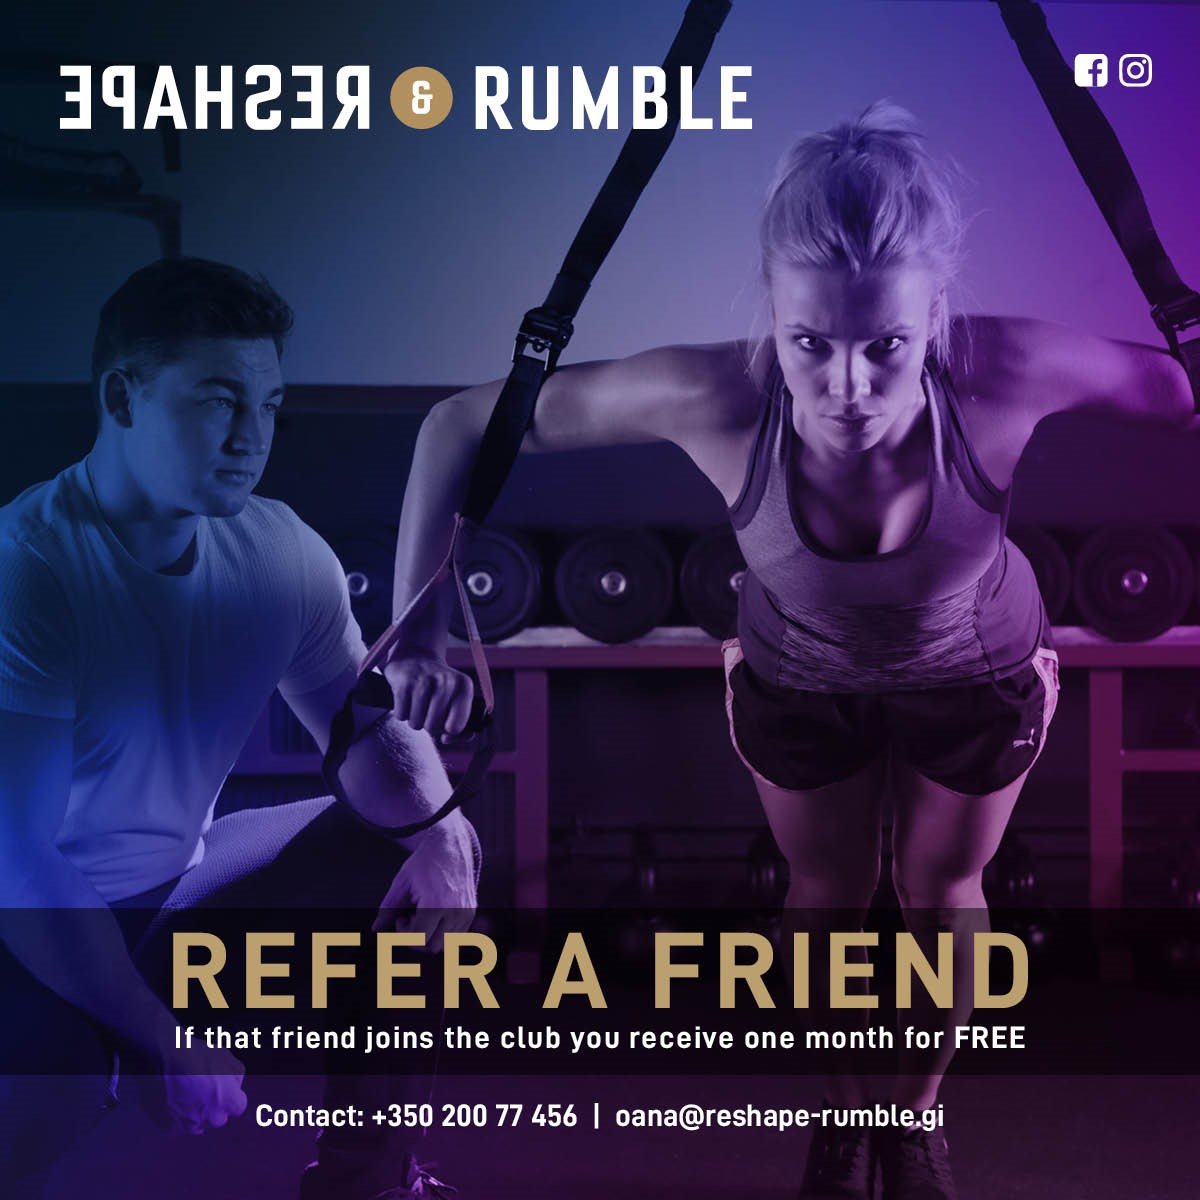 R&R Refer a Friend UPDATED IG.jpg